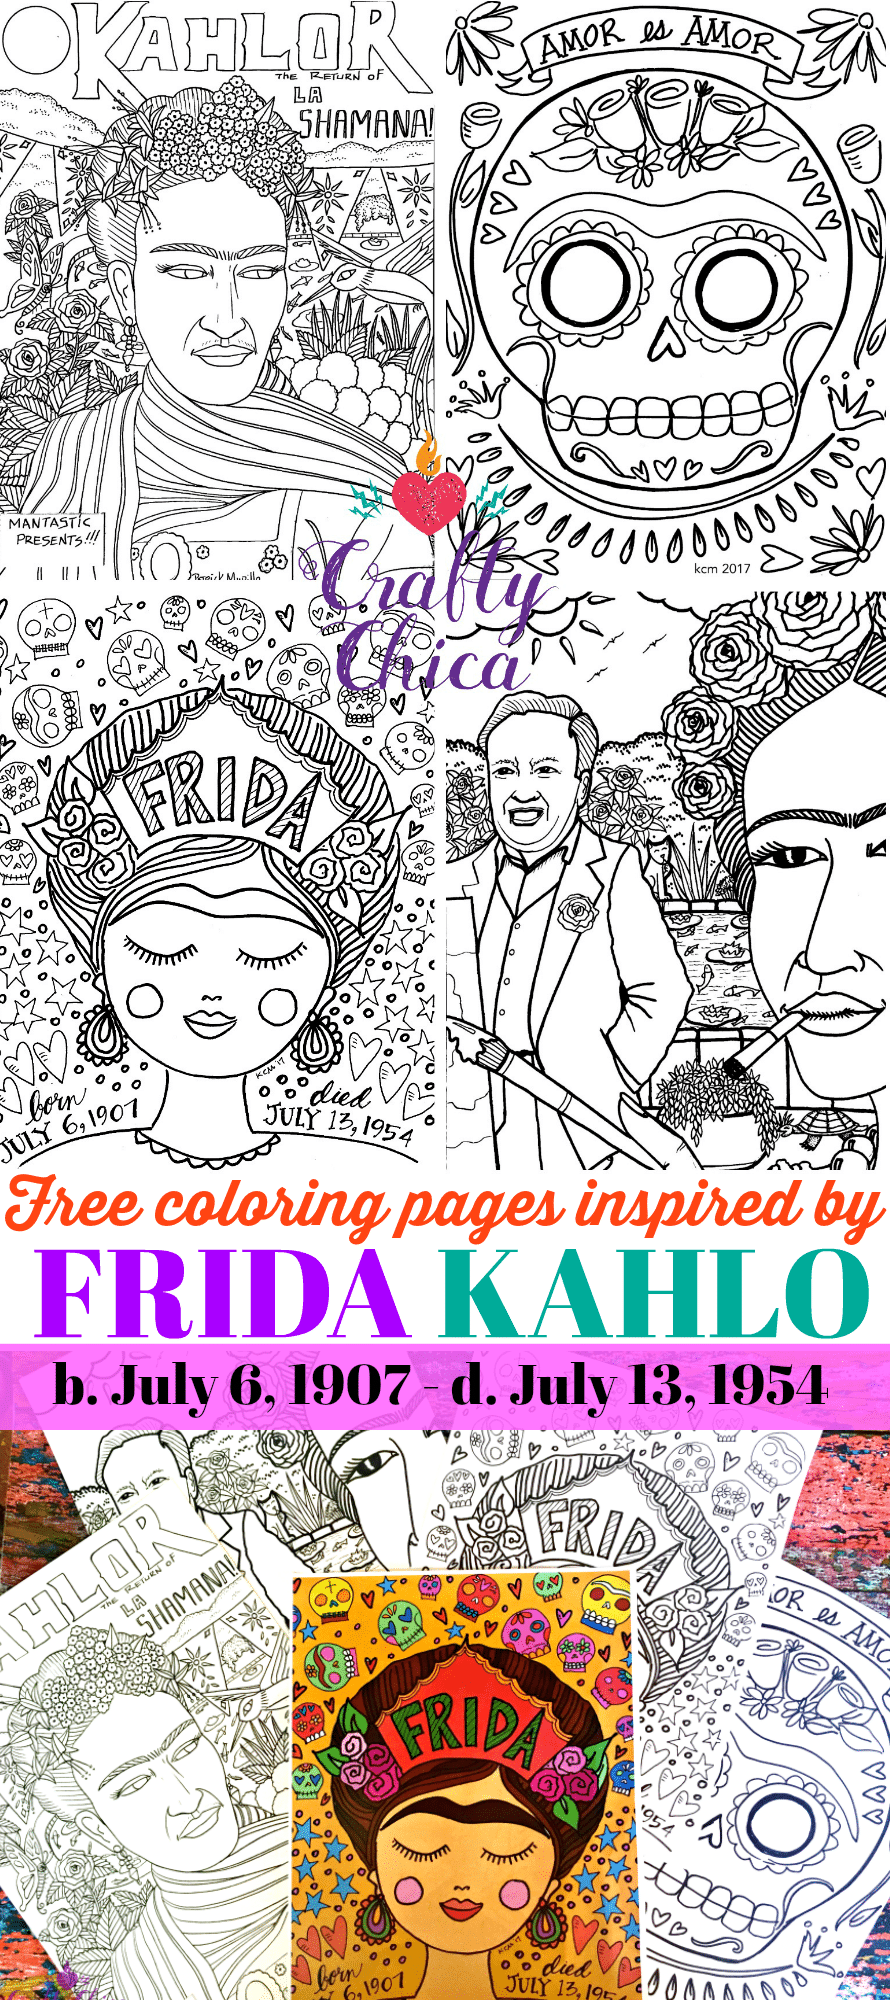 Free Frida Kahlo Coloring Pages! - The Crafty Chica